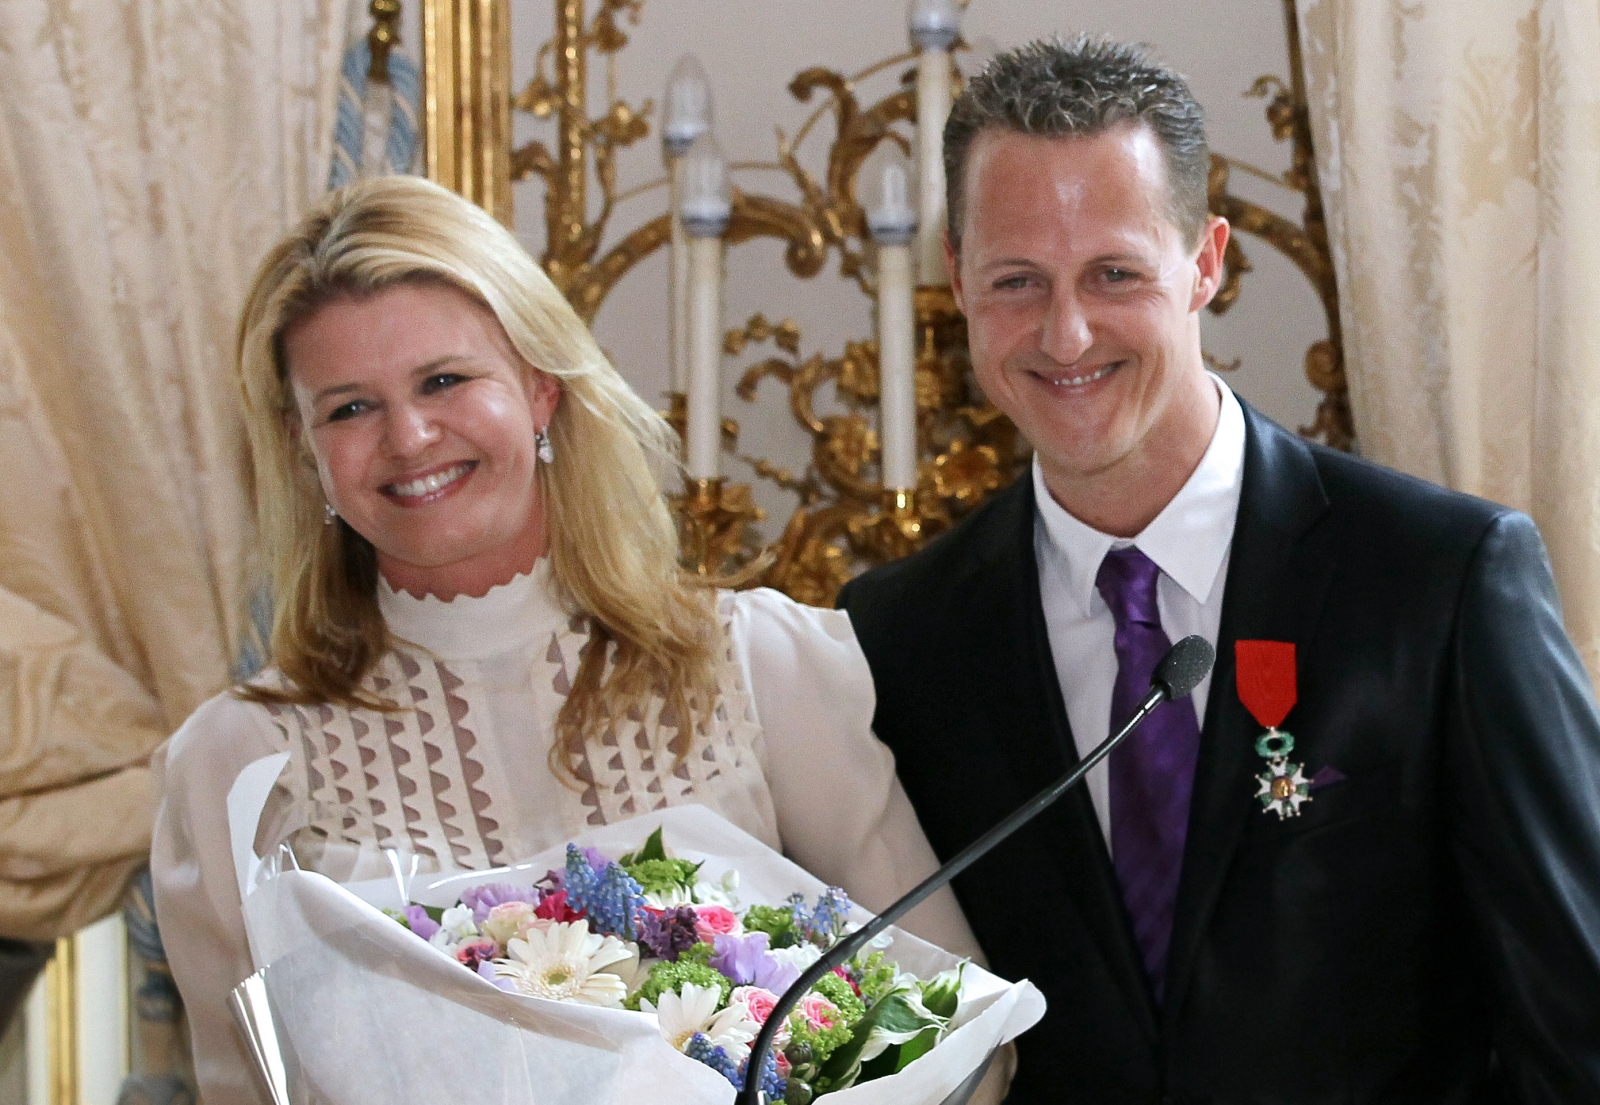 Details Revealed About The Care Michael Schumacher Is Receiving At Home From Wife Corinna And A